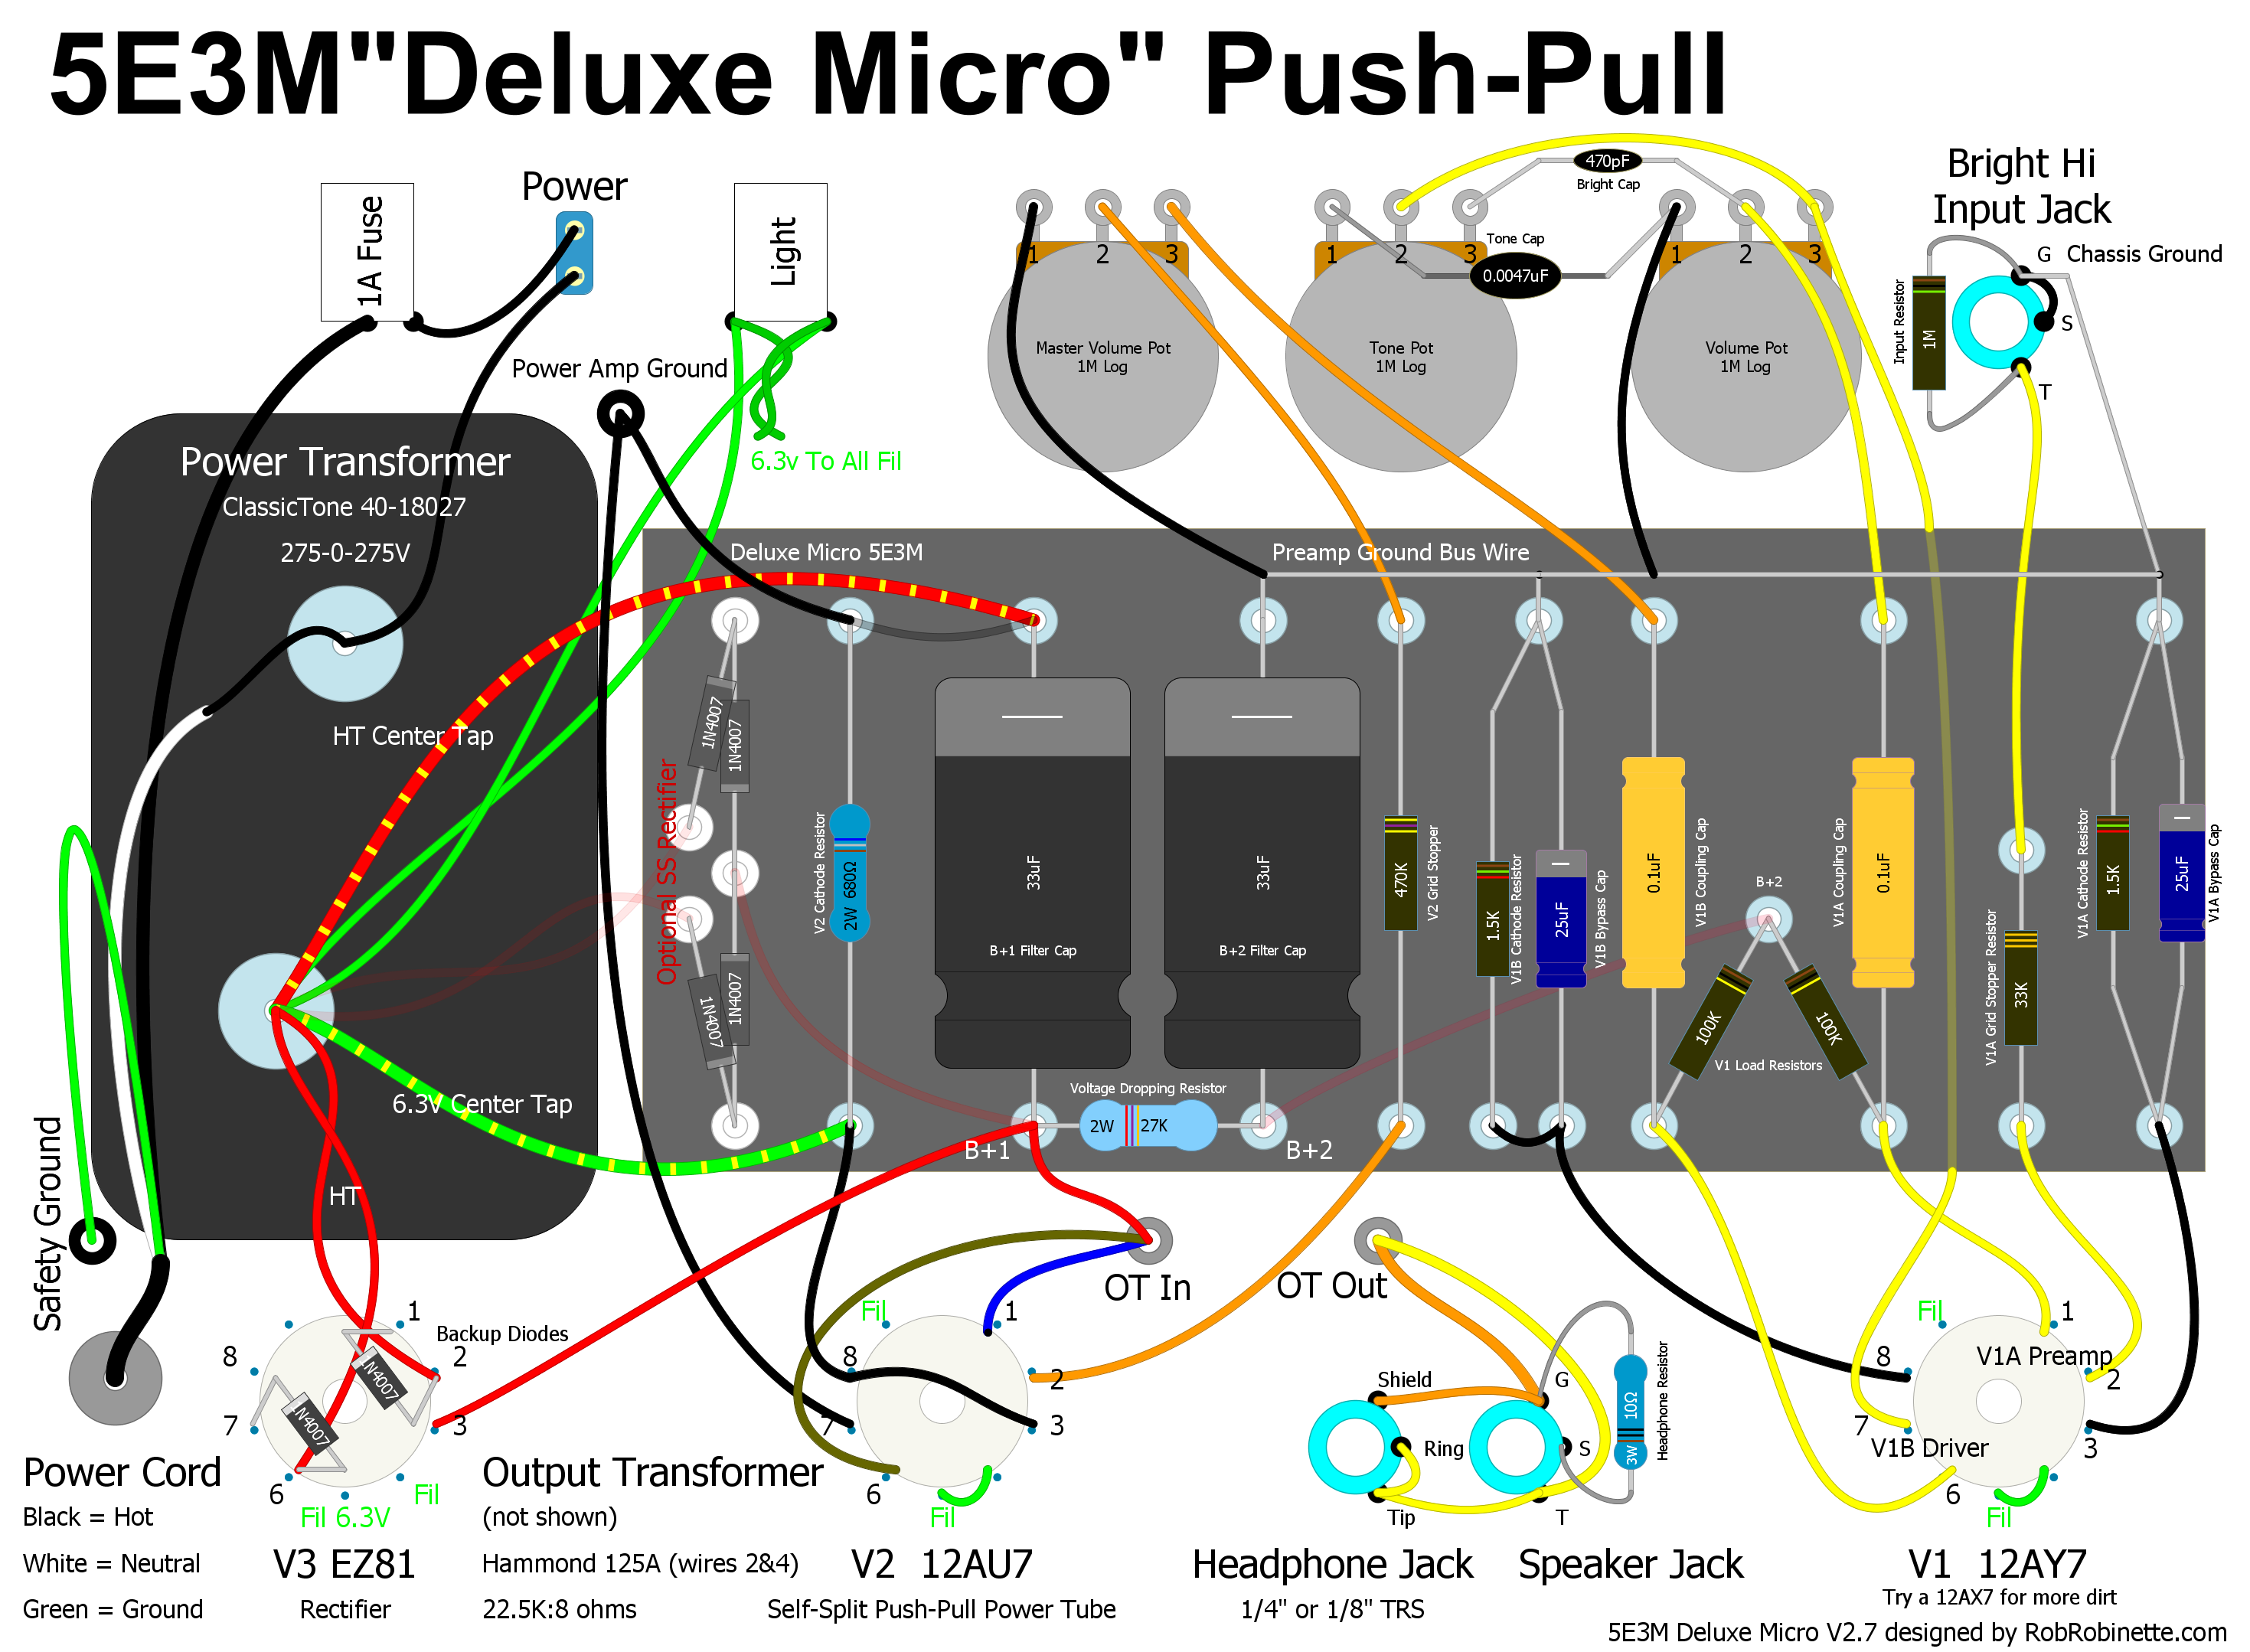 Hammond Transformer Wiring Diagram 34 Images Yokoyama Control Deluxe Micro Push Pull At